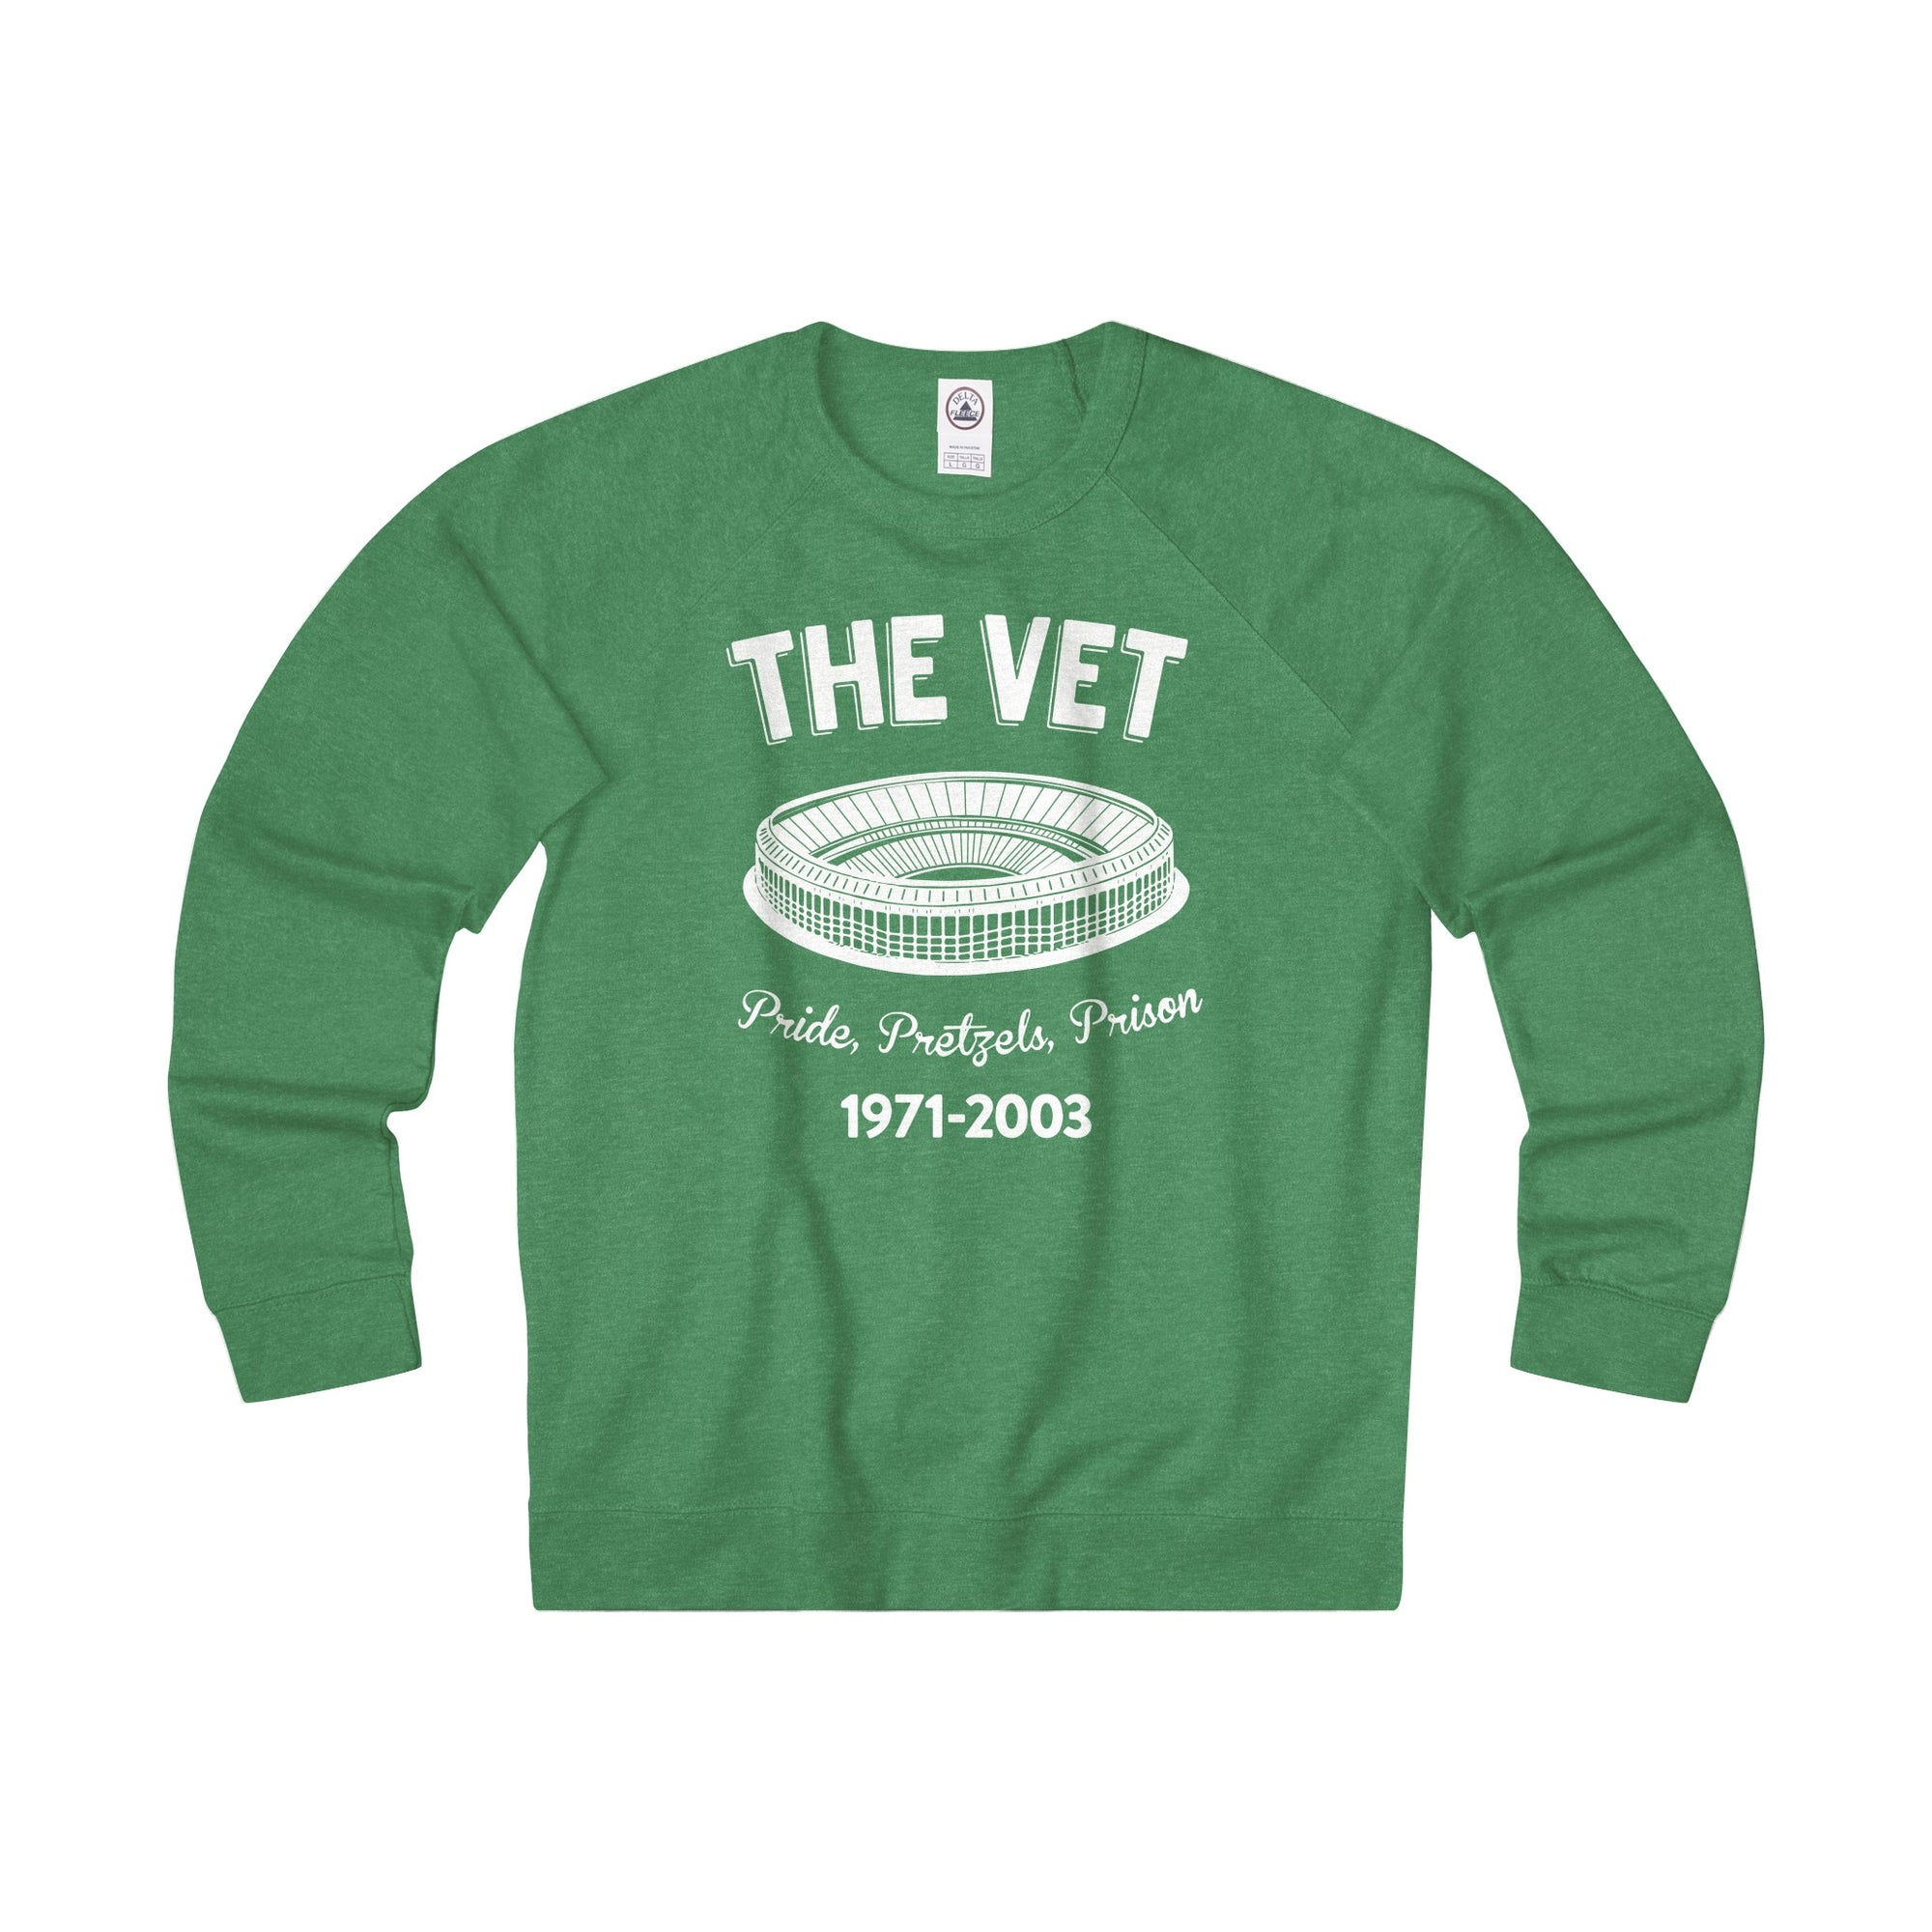 The Vet Retro Adult Unisex French Terry Crew